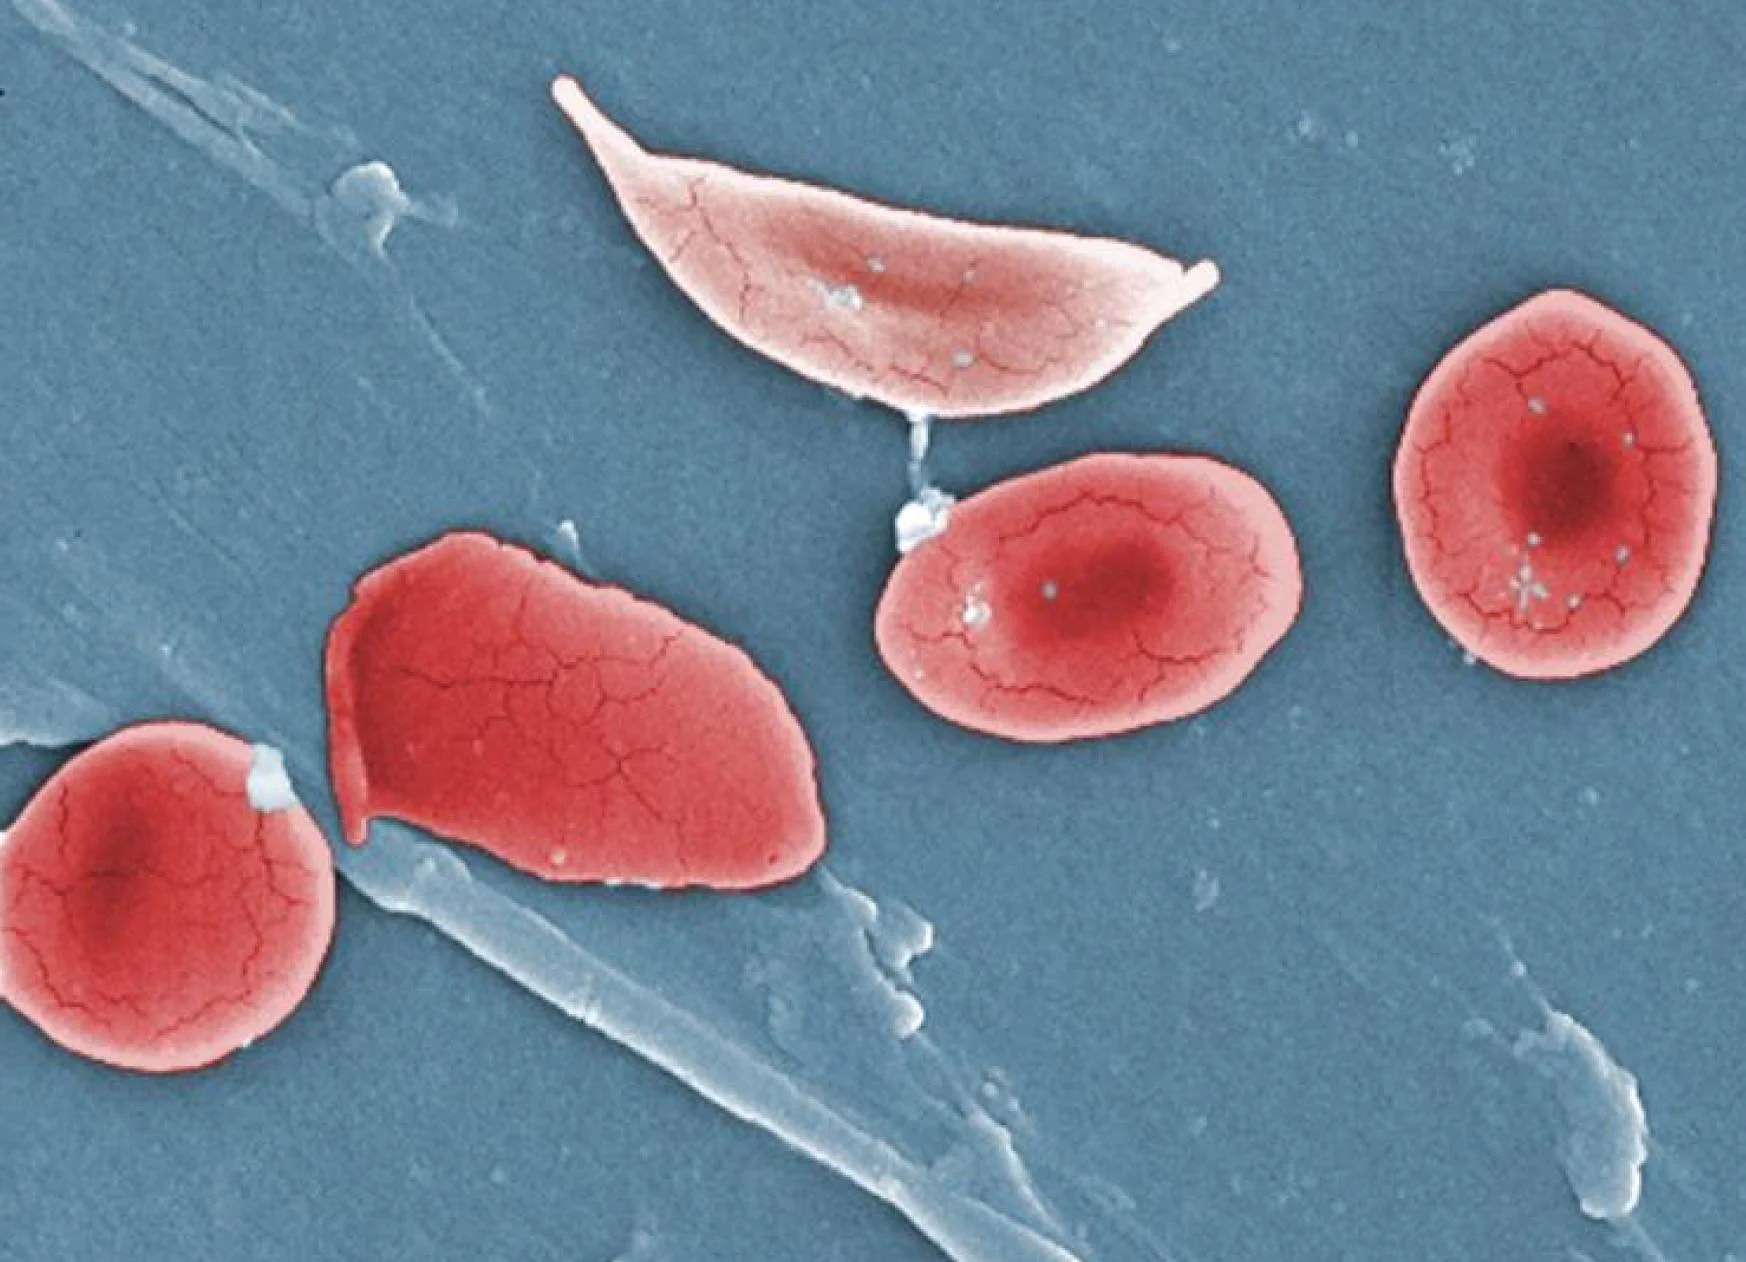 In sickle cell disease, the red blood cells are misshapen and don't carry oxygen well. Image credit - OpenStax College licensed under CC BY 3.0